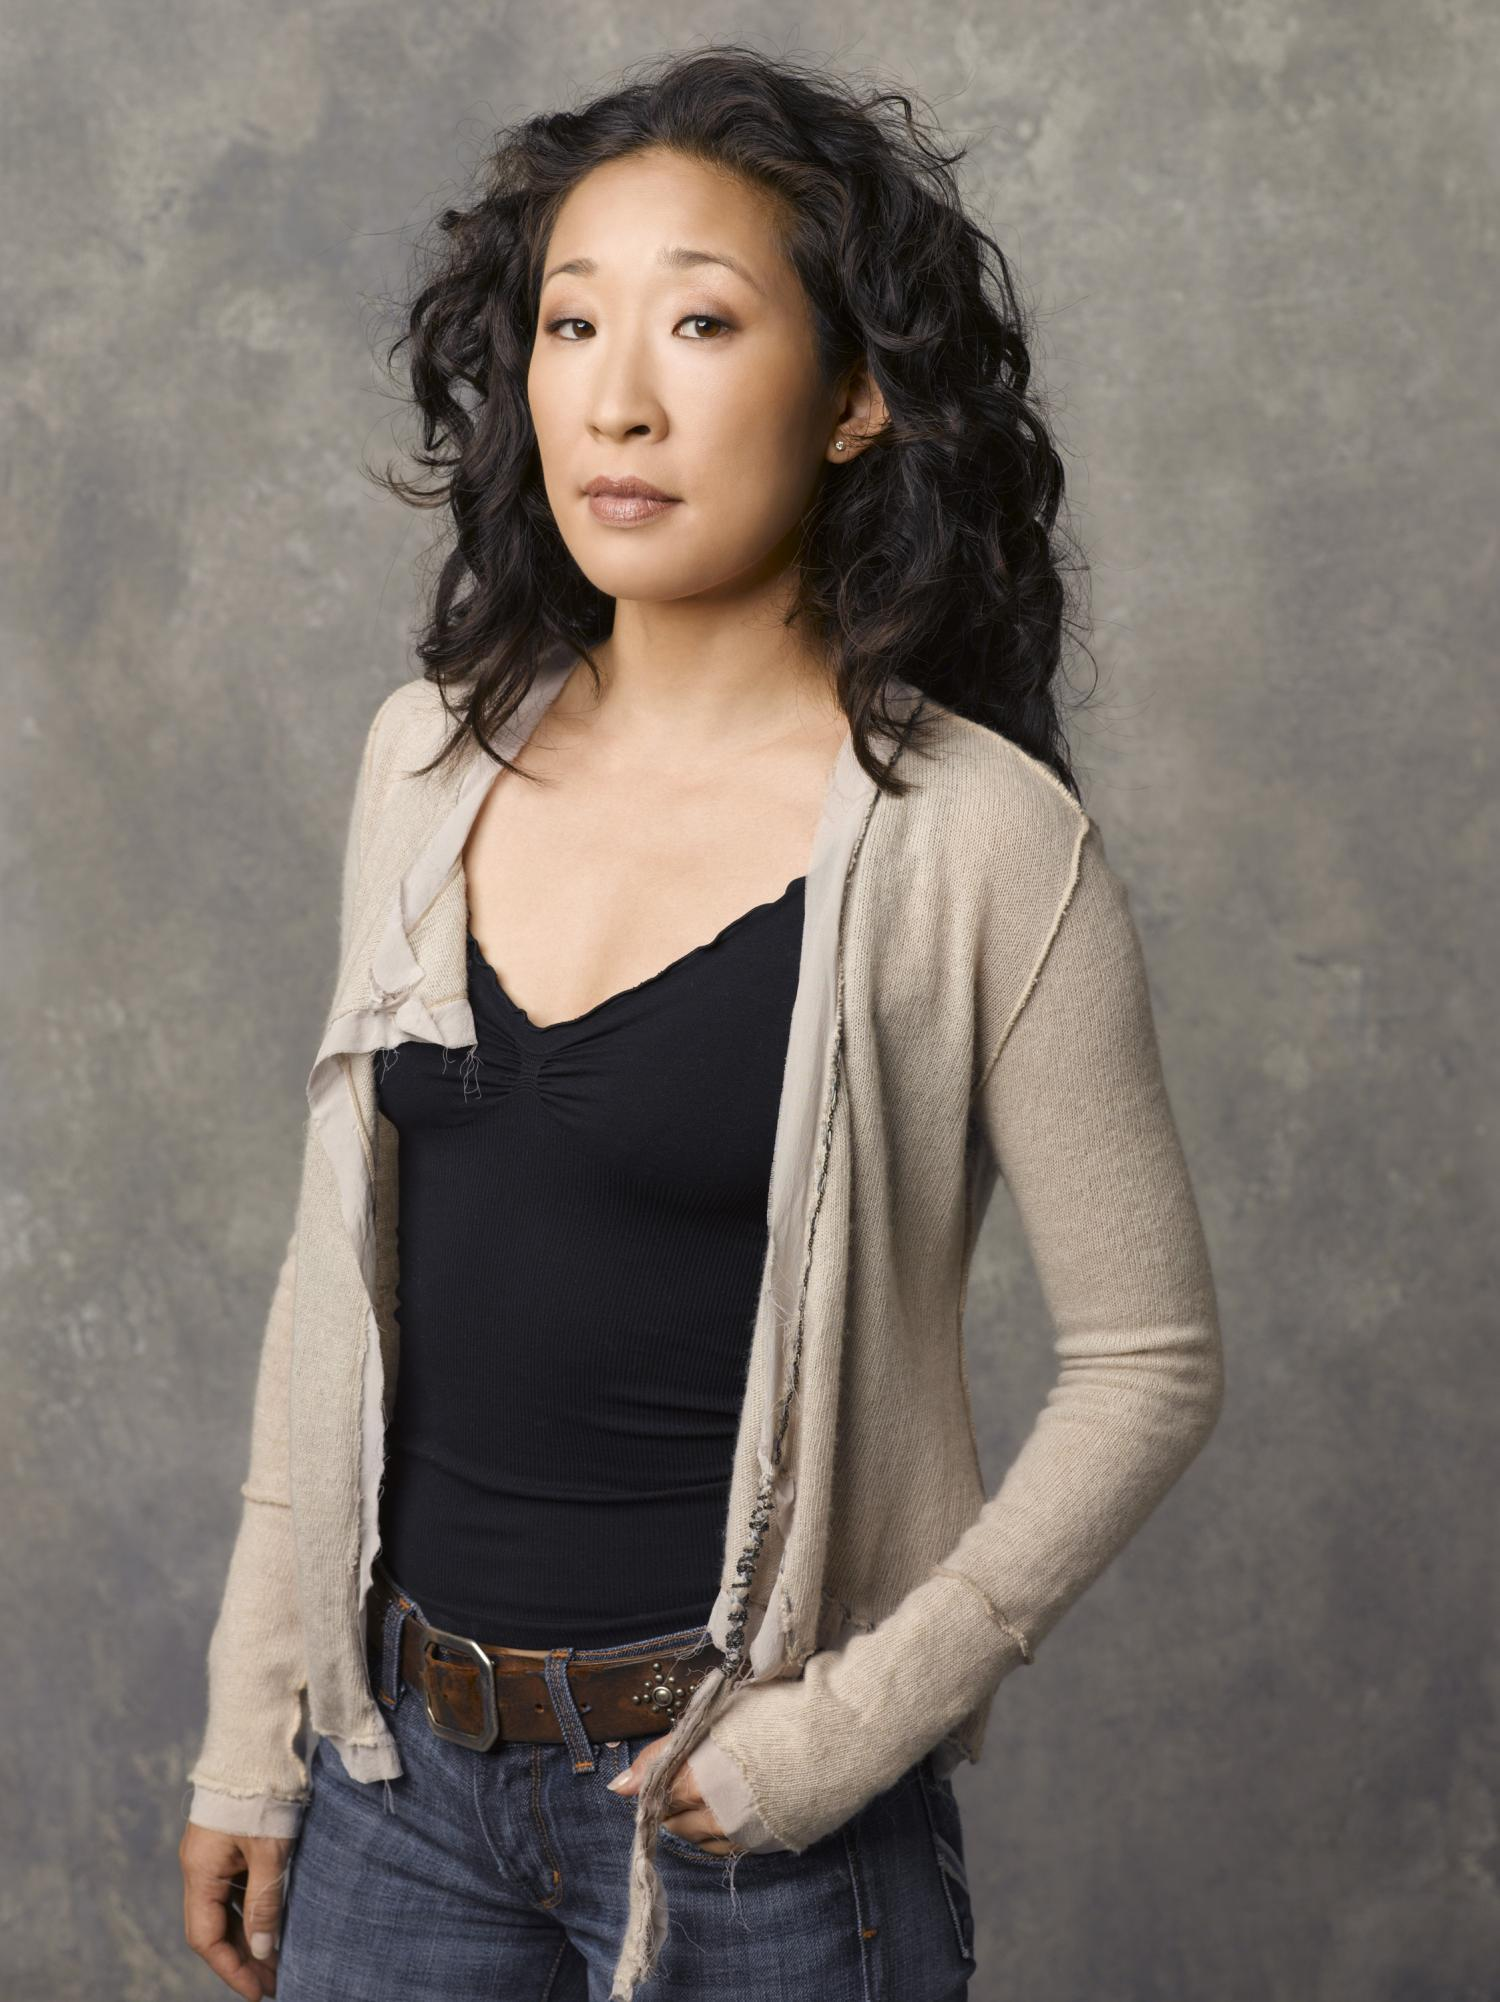 sandra oh - photo #27